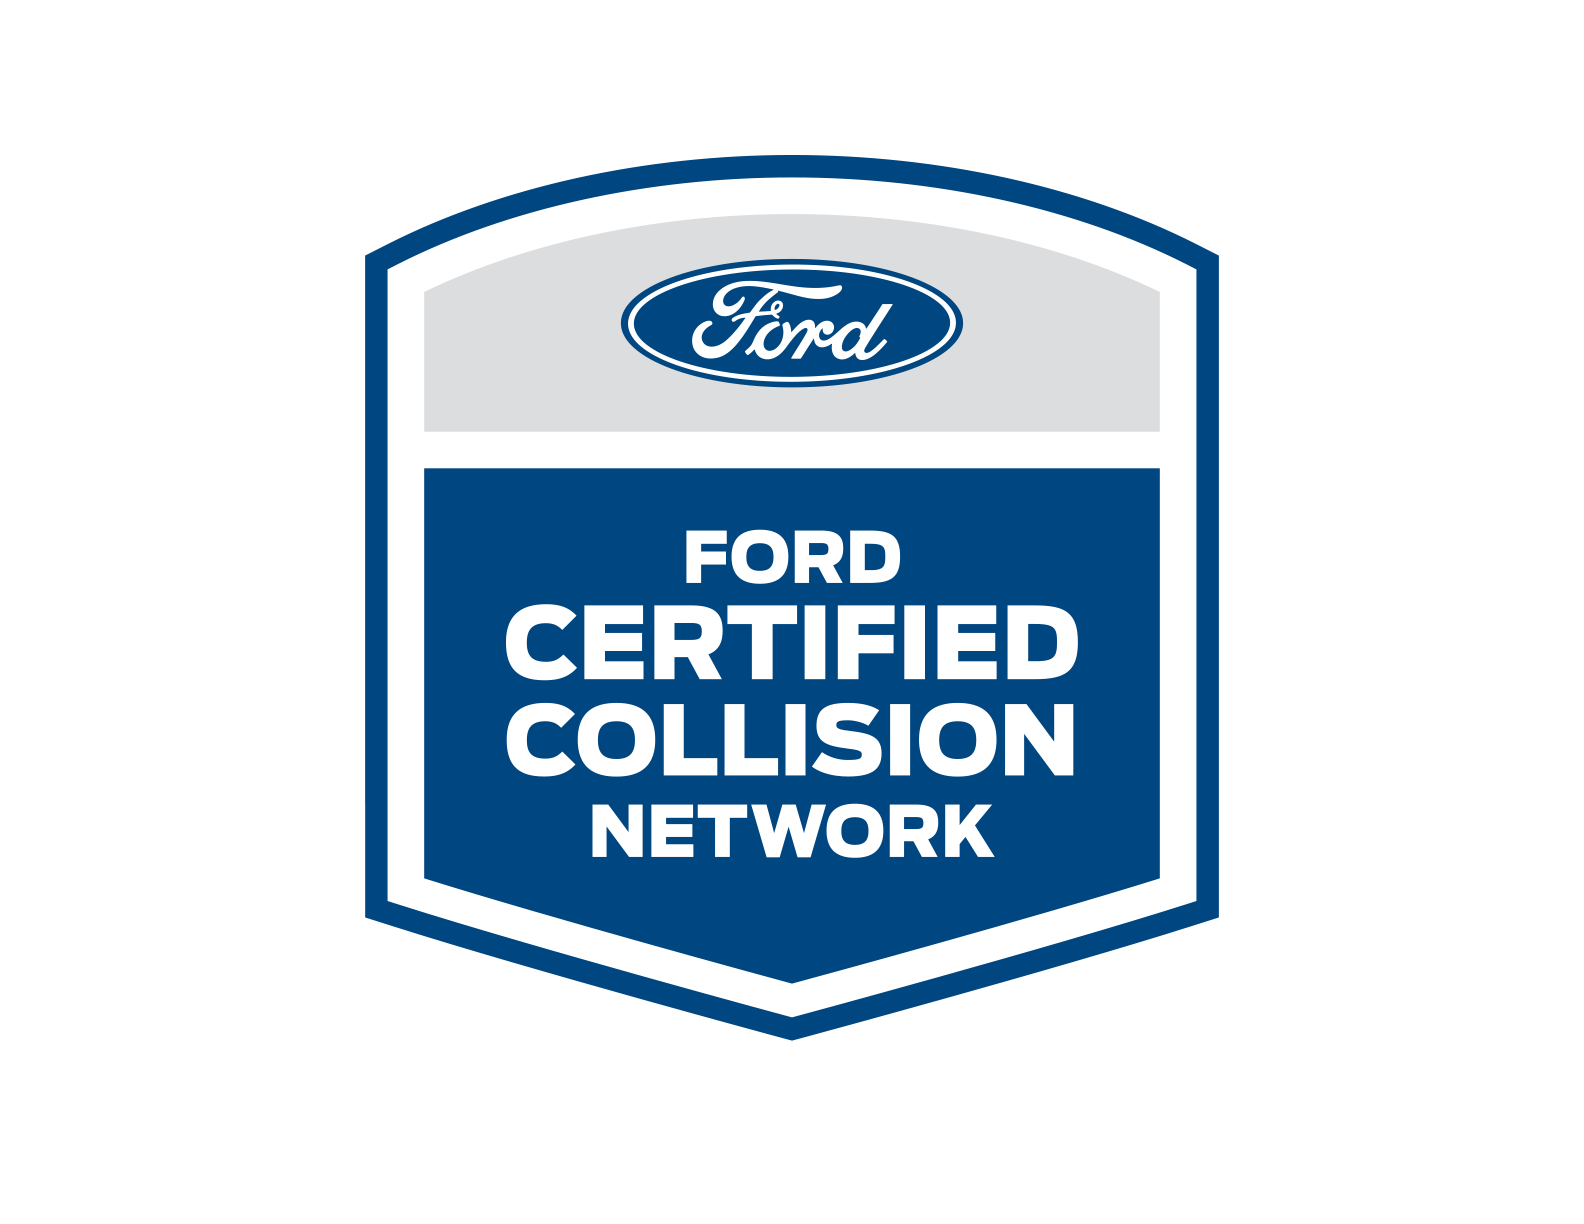 Ford Certified Collision